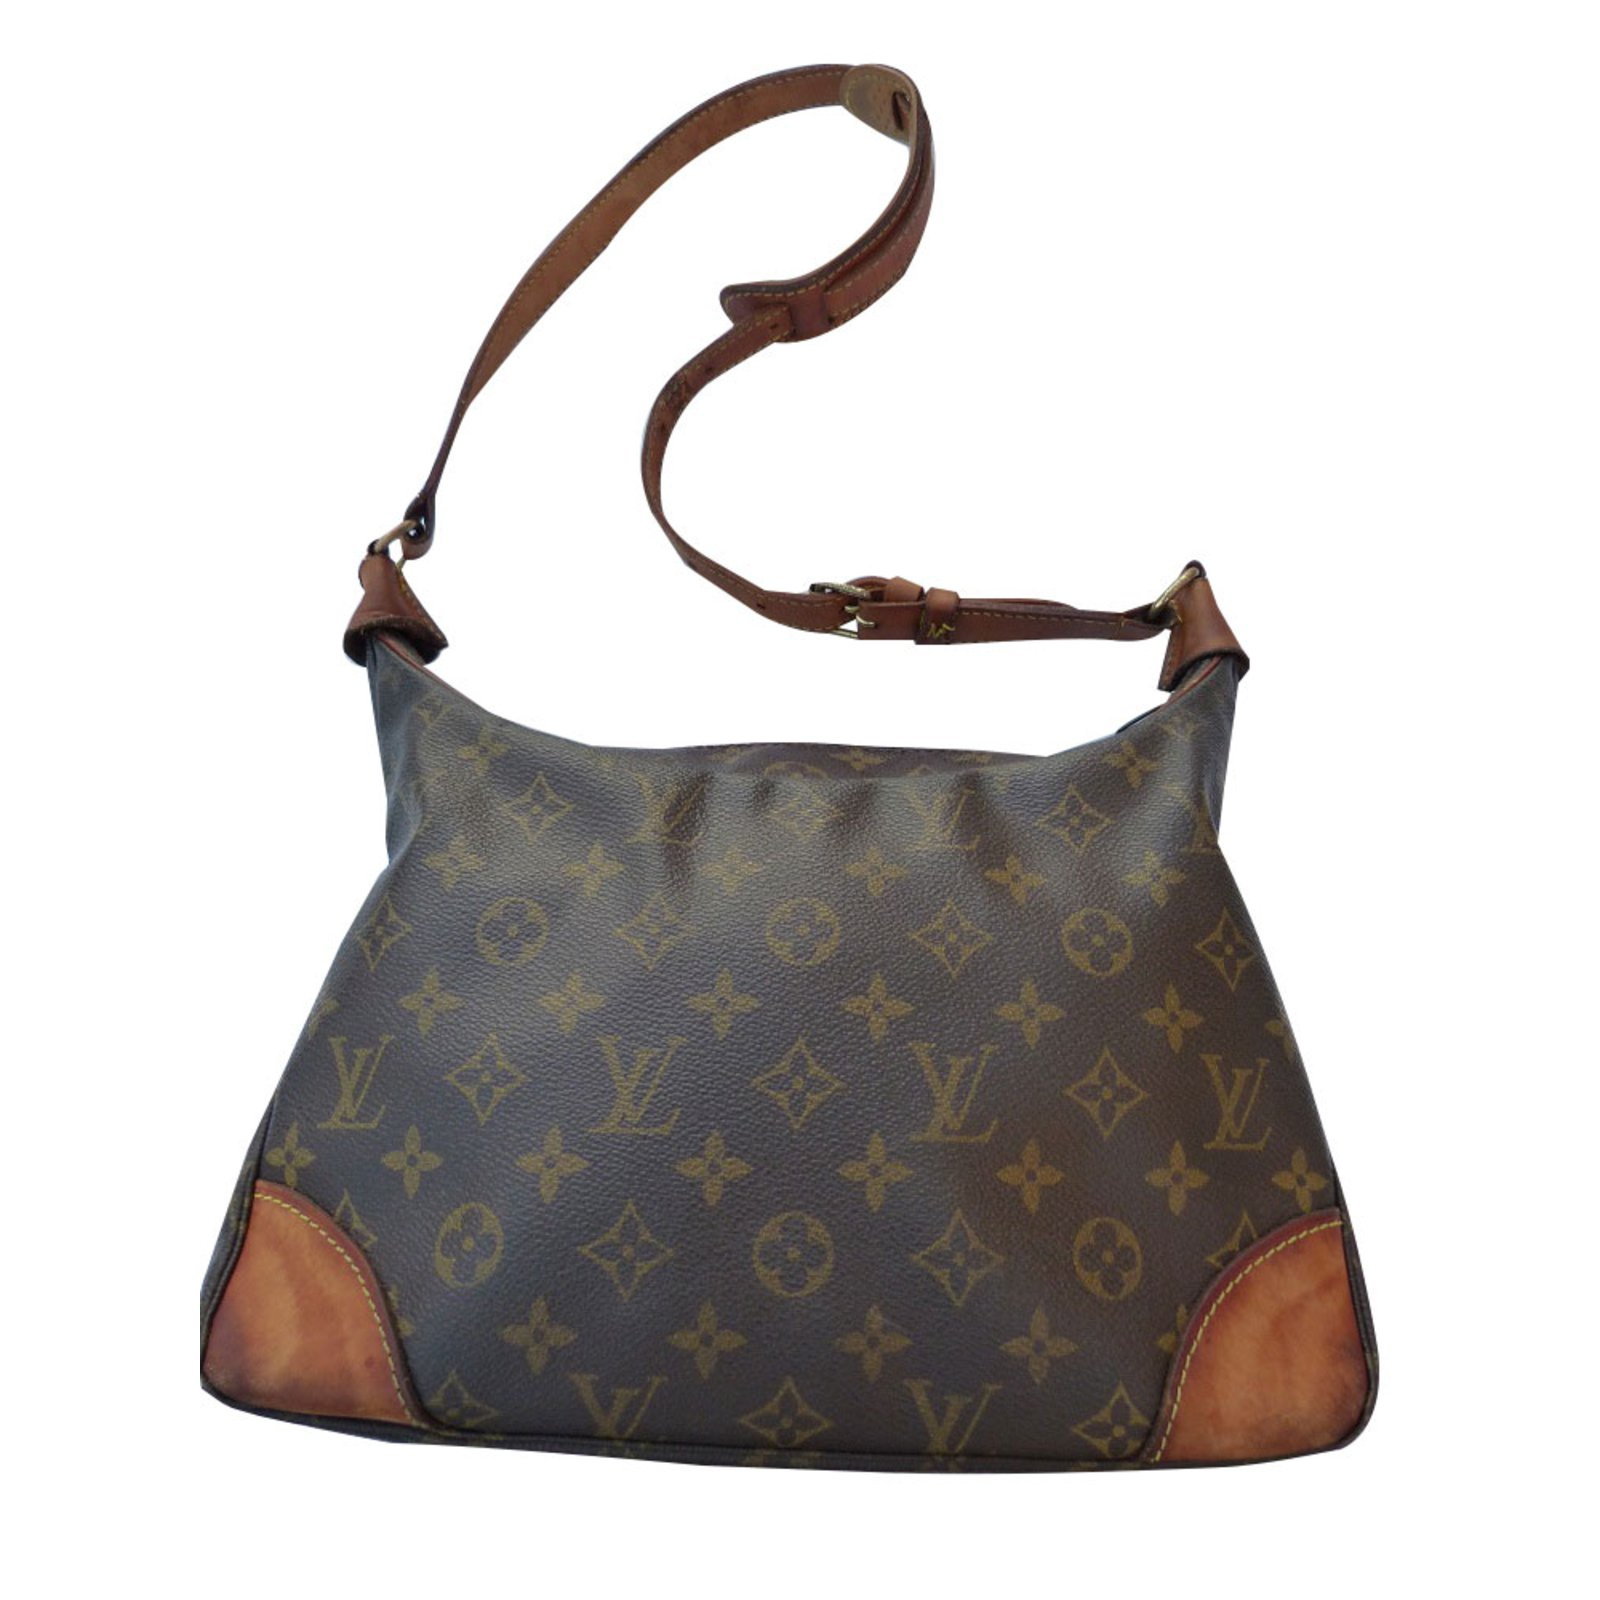 Louis Vuitton Boulogne bag Handbags Leather bc1c9874c8a41